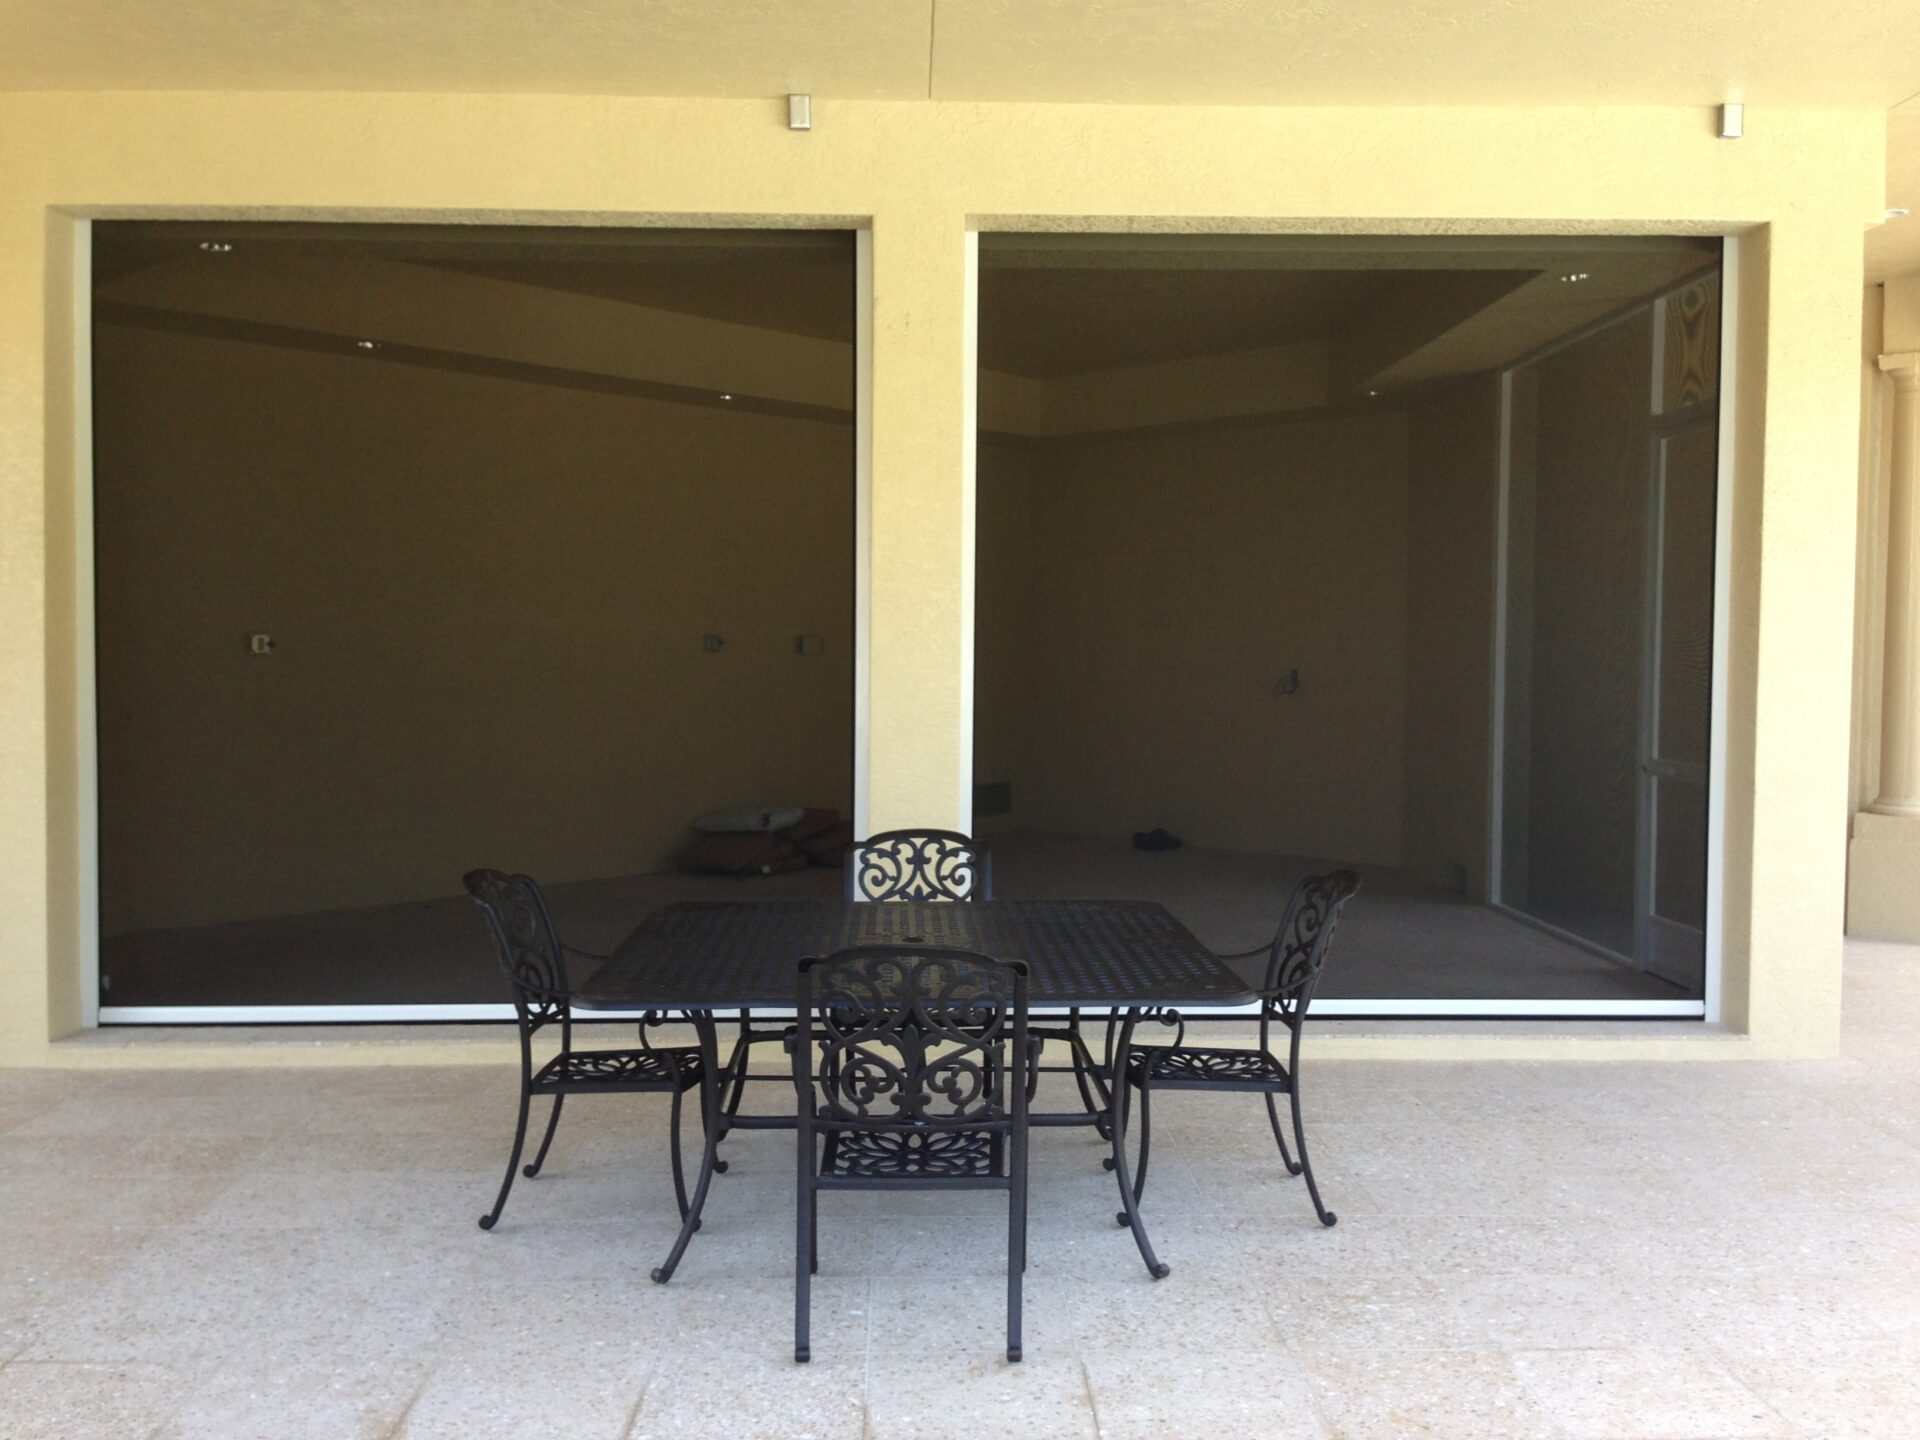 Patio - Window Shades - Roman Shades, Roller Shades, Solar Shades, Cellular Shades, & more - Dynamic Delivery Blinds | Nashville, TN